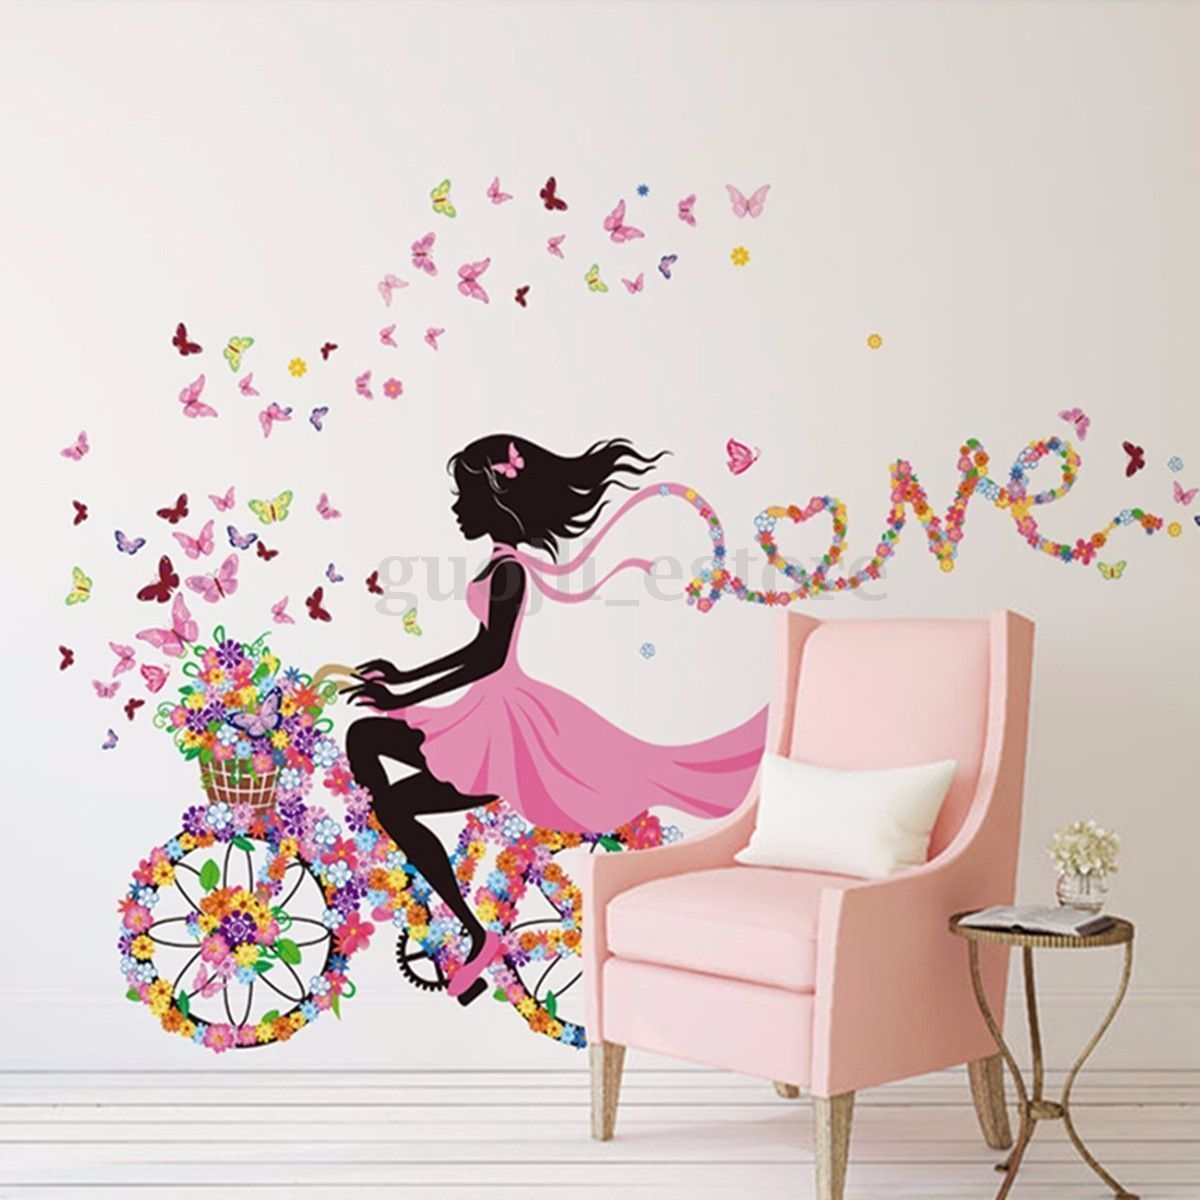 Wall decal new york letter frame cheap stickers world discount - Flower Girl Removable Wall Art Sticker Vinyl Decal Kids Room Home Mural Decor Us 4 75